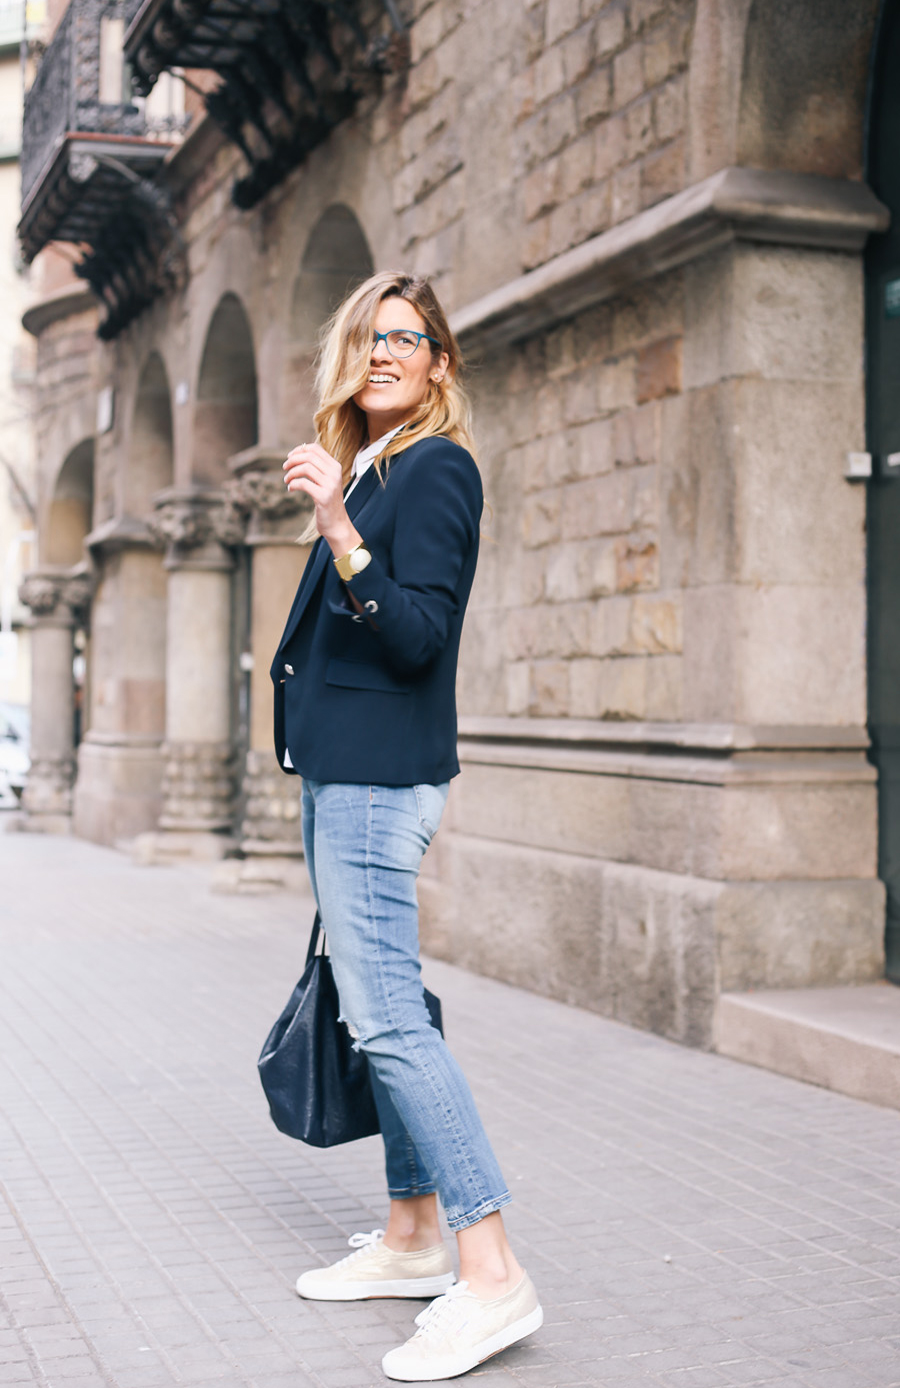 silvia_bosch_look_ikks_jeans-with-superga